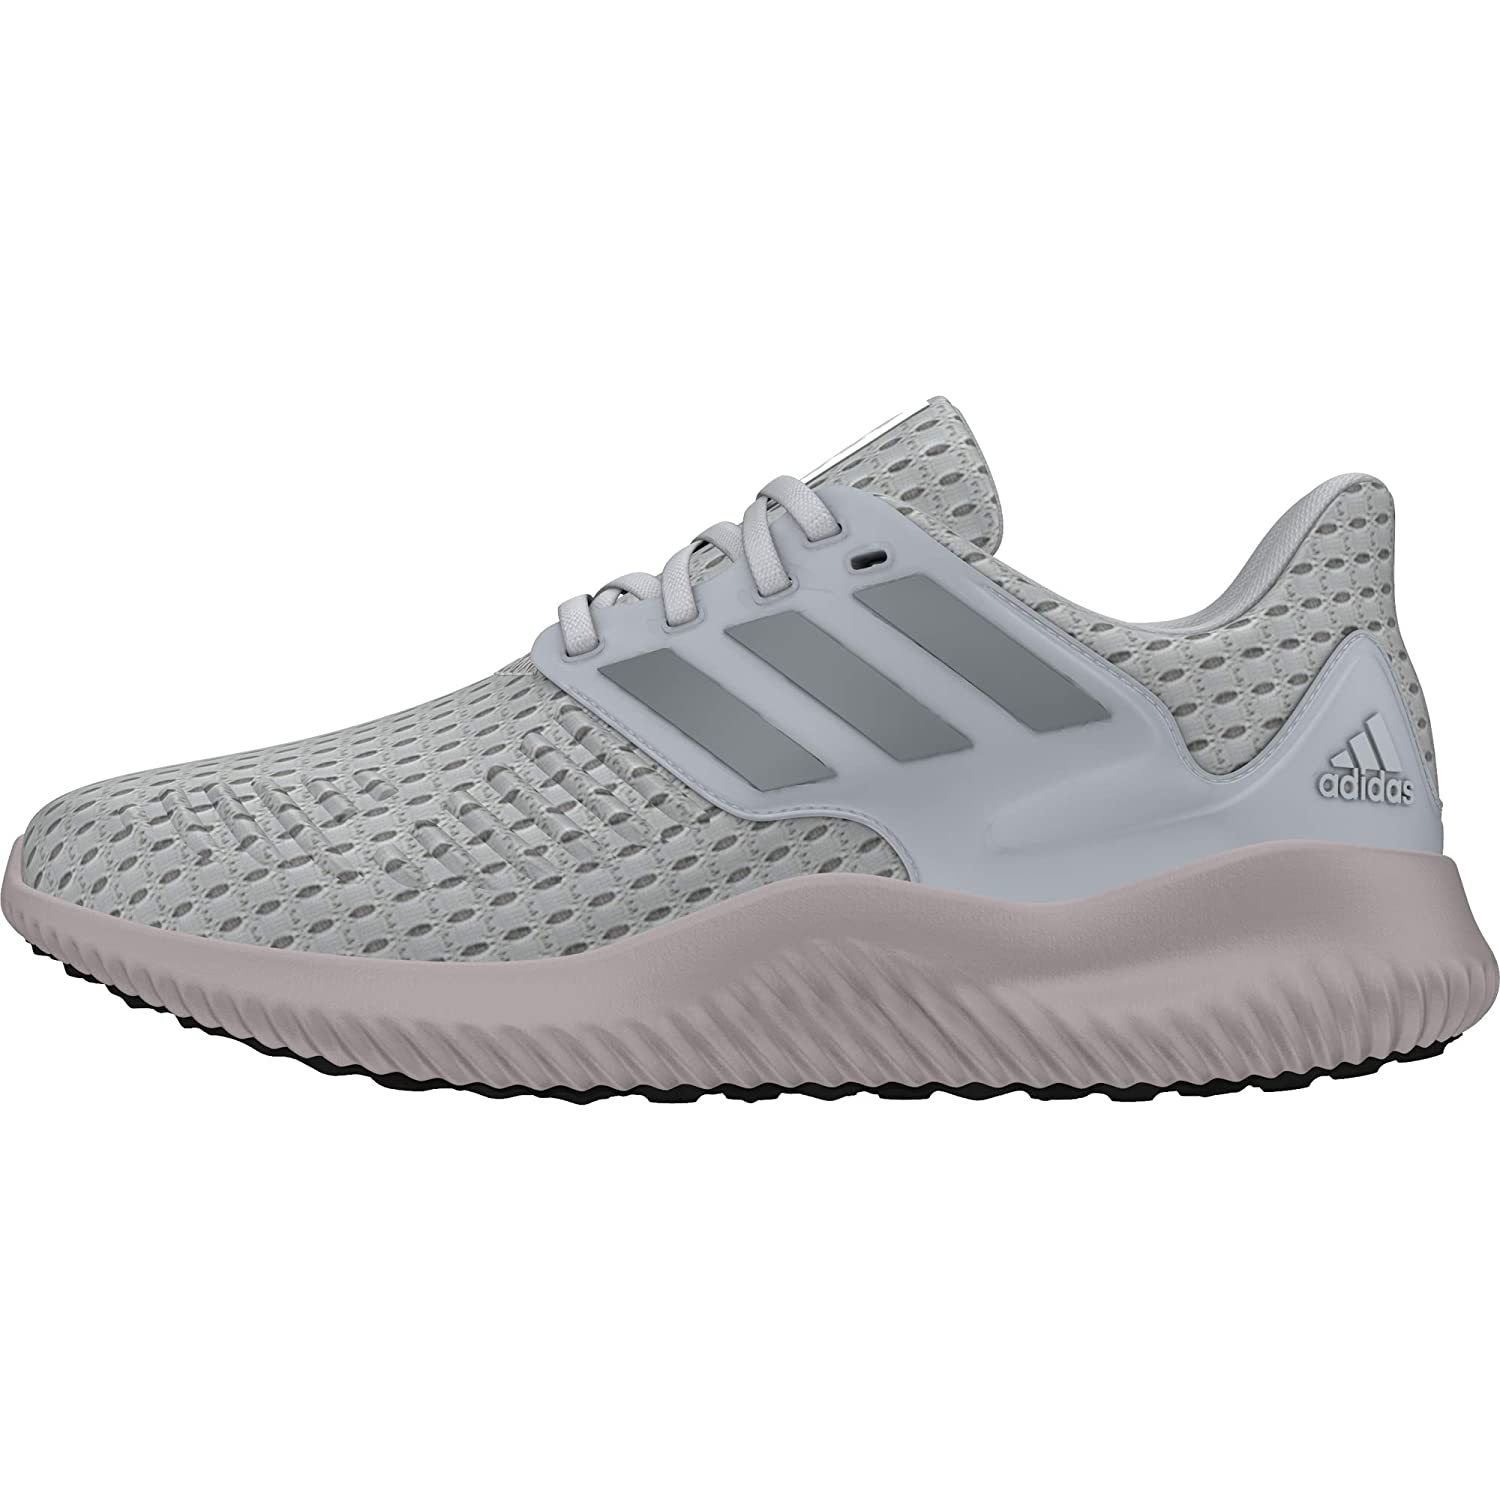 brand new 2e8a2 0fe41 adidas Womens Alphabounce Rc.2 W Fitness Shoes Amazon.co.uk Shoes  Bags